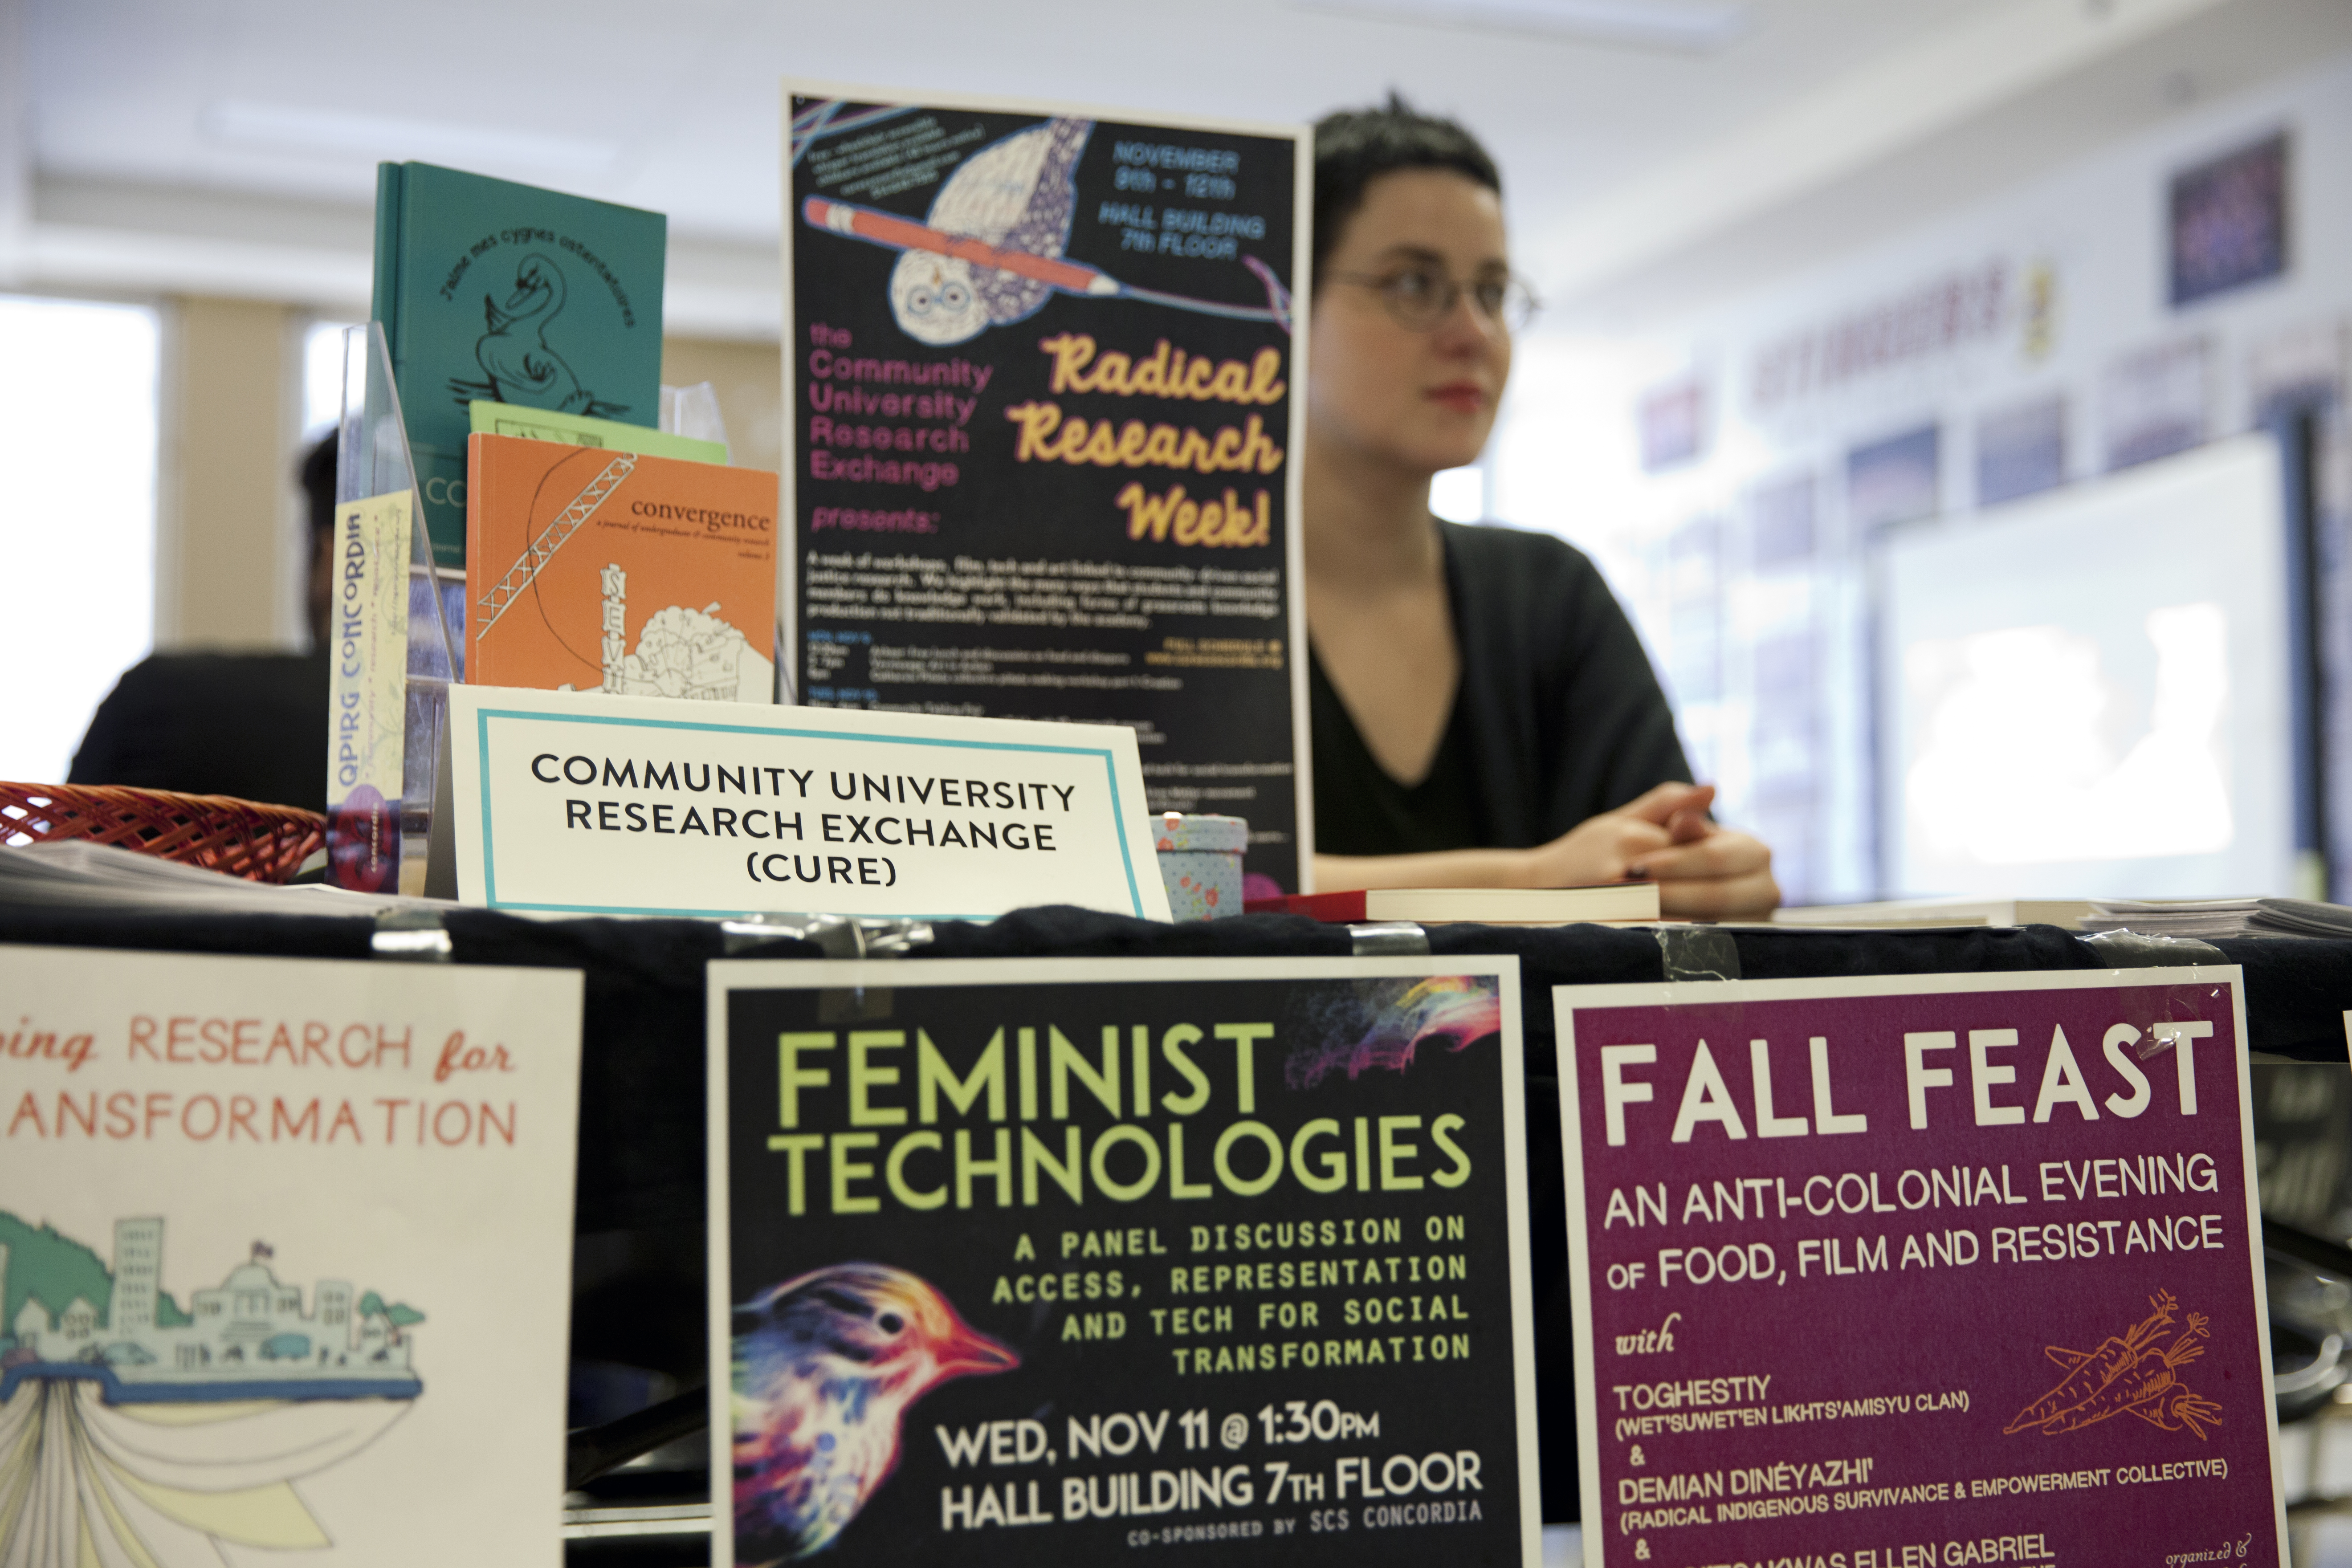 Radical Research Week, which started Monday, is a week of workshops, panels and art about community-driven social justice research. Photo by Marie-Pierre Savard.